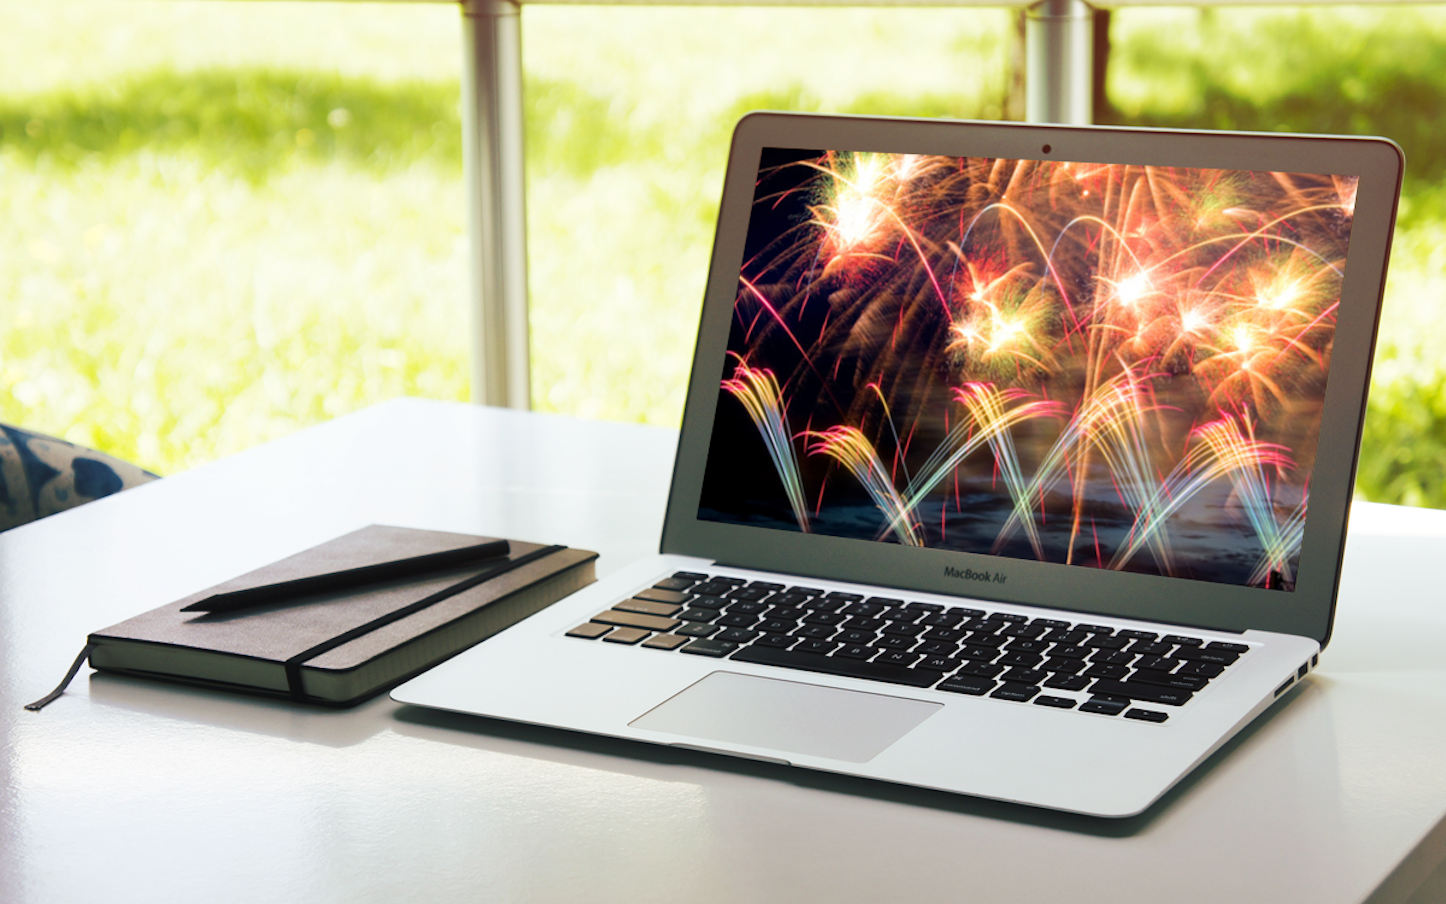 MacBook Air Fireworks